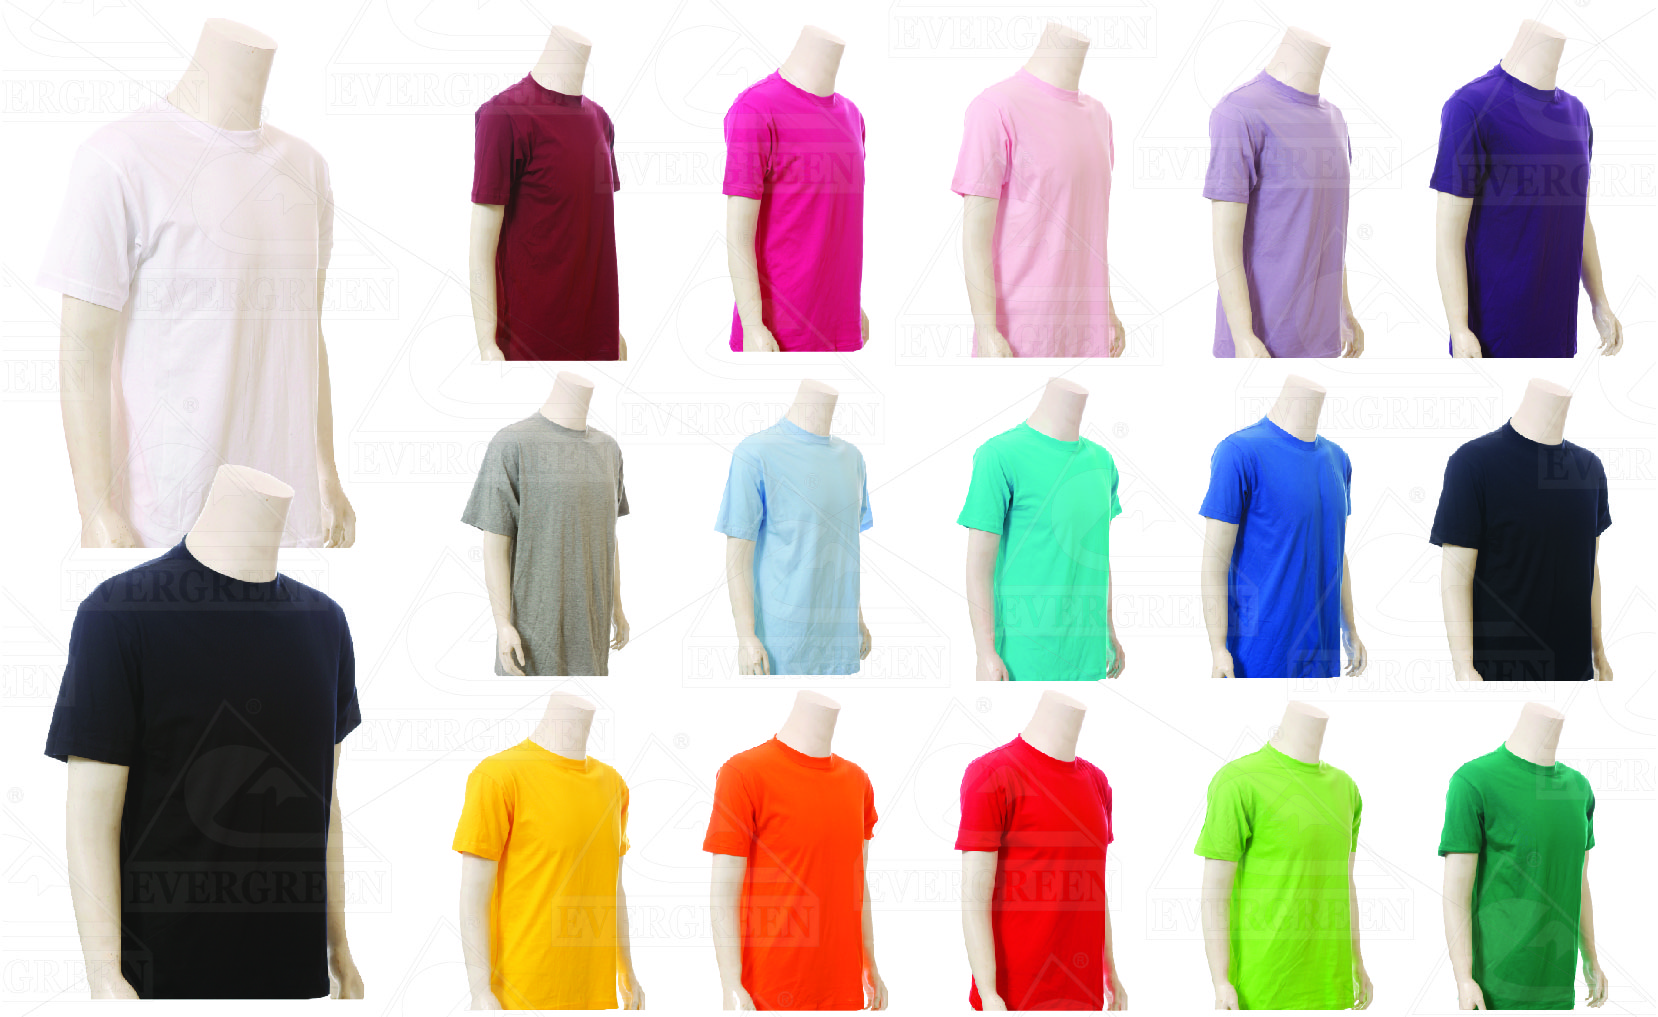 New arrival foursquare freelife round neck tshirt 100 for T shirt supplier wholesale malaysia